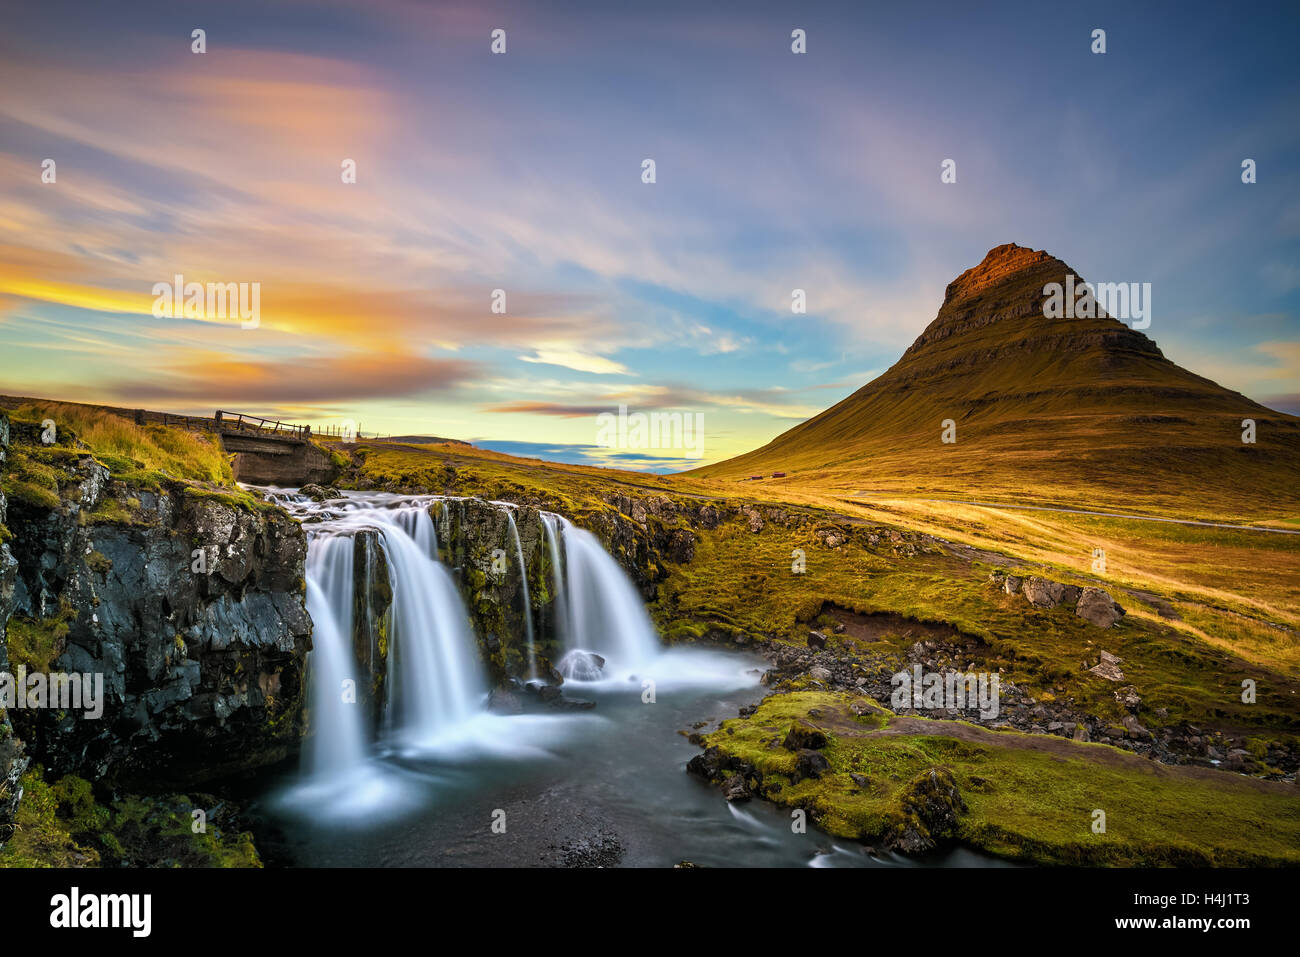 Summer sunset over the famous Kirkjufellsfoss Waterfall with Kirkjufell mountain in the background in Iceland. Long exposure. Stock Photo